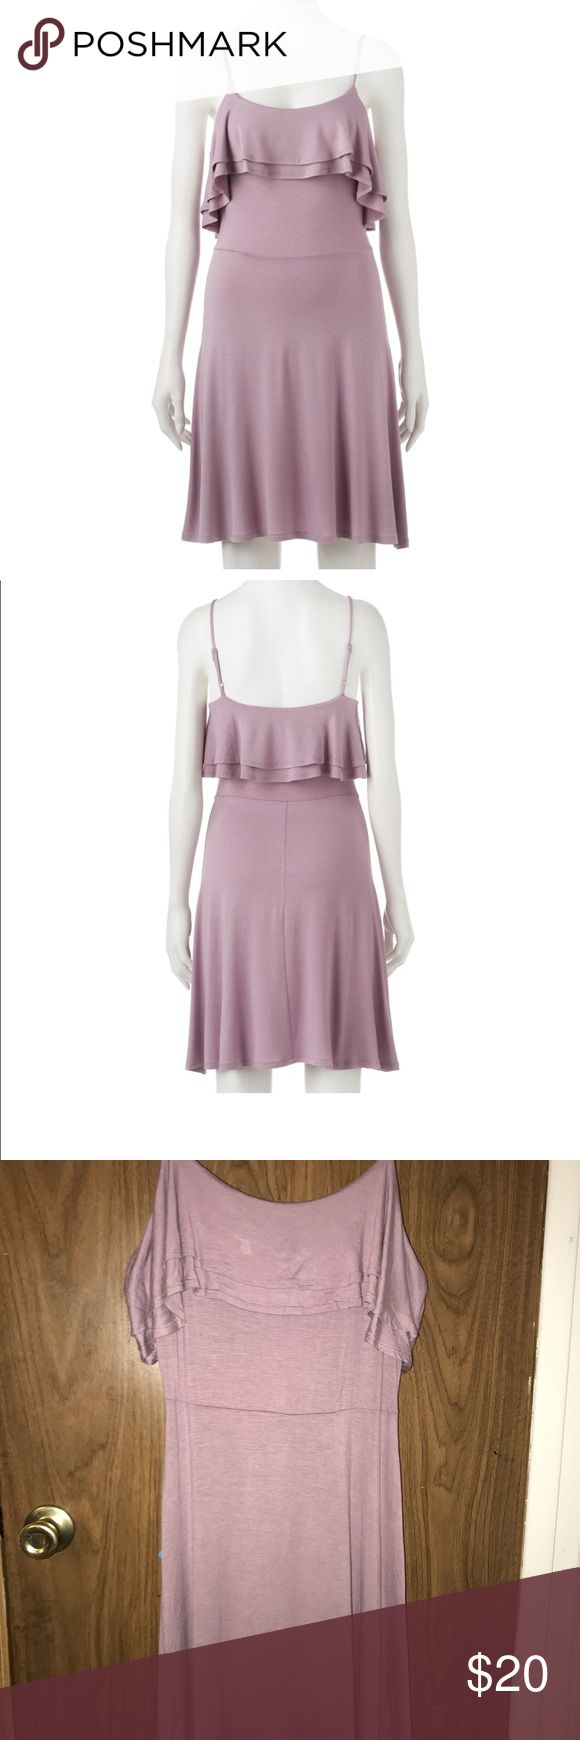 Pink Republic double Ruffle Skater Dress PRODUCT FEATURES •Ruffle bodice •Scoopneck •Adjustable spaghetti straps •Unlined FIT & SIZING •34-in. approximate length from shoulder to hem •Skater design FABRIC & CARE •Rayon, spandex Pink Republic Dresses Midi